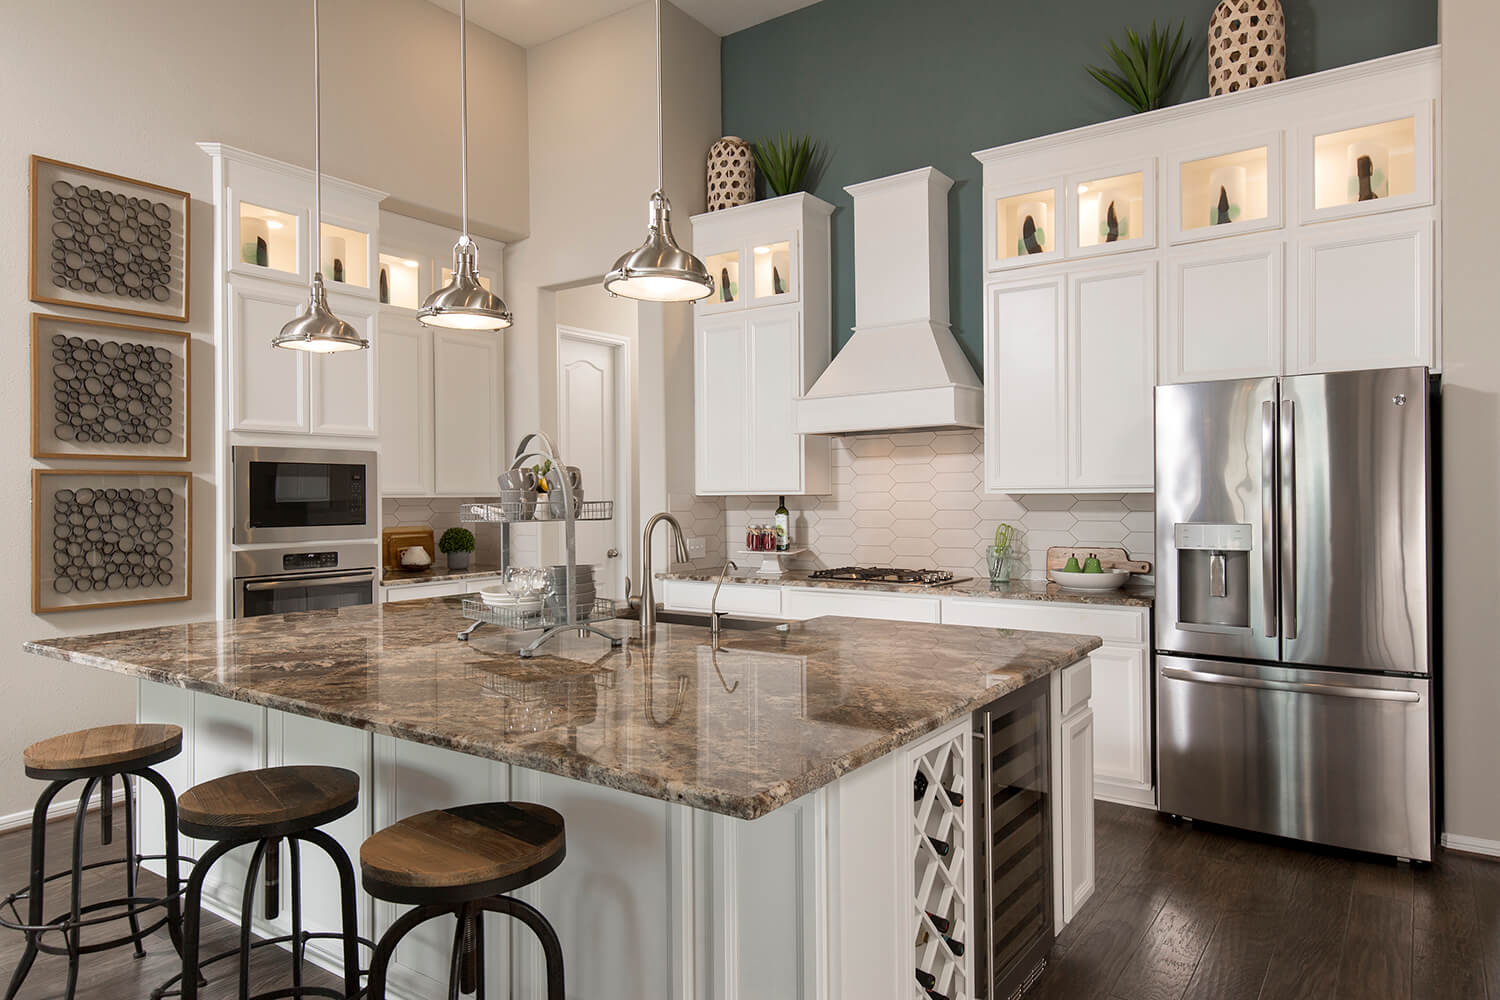 Kitchen - Lindsay (6495 Plan)